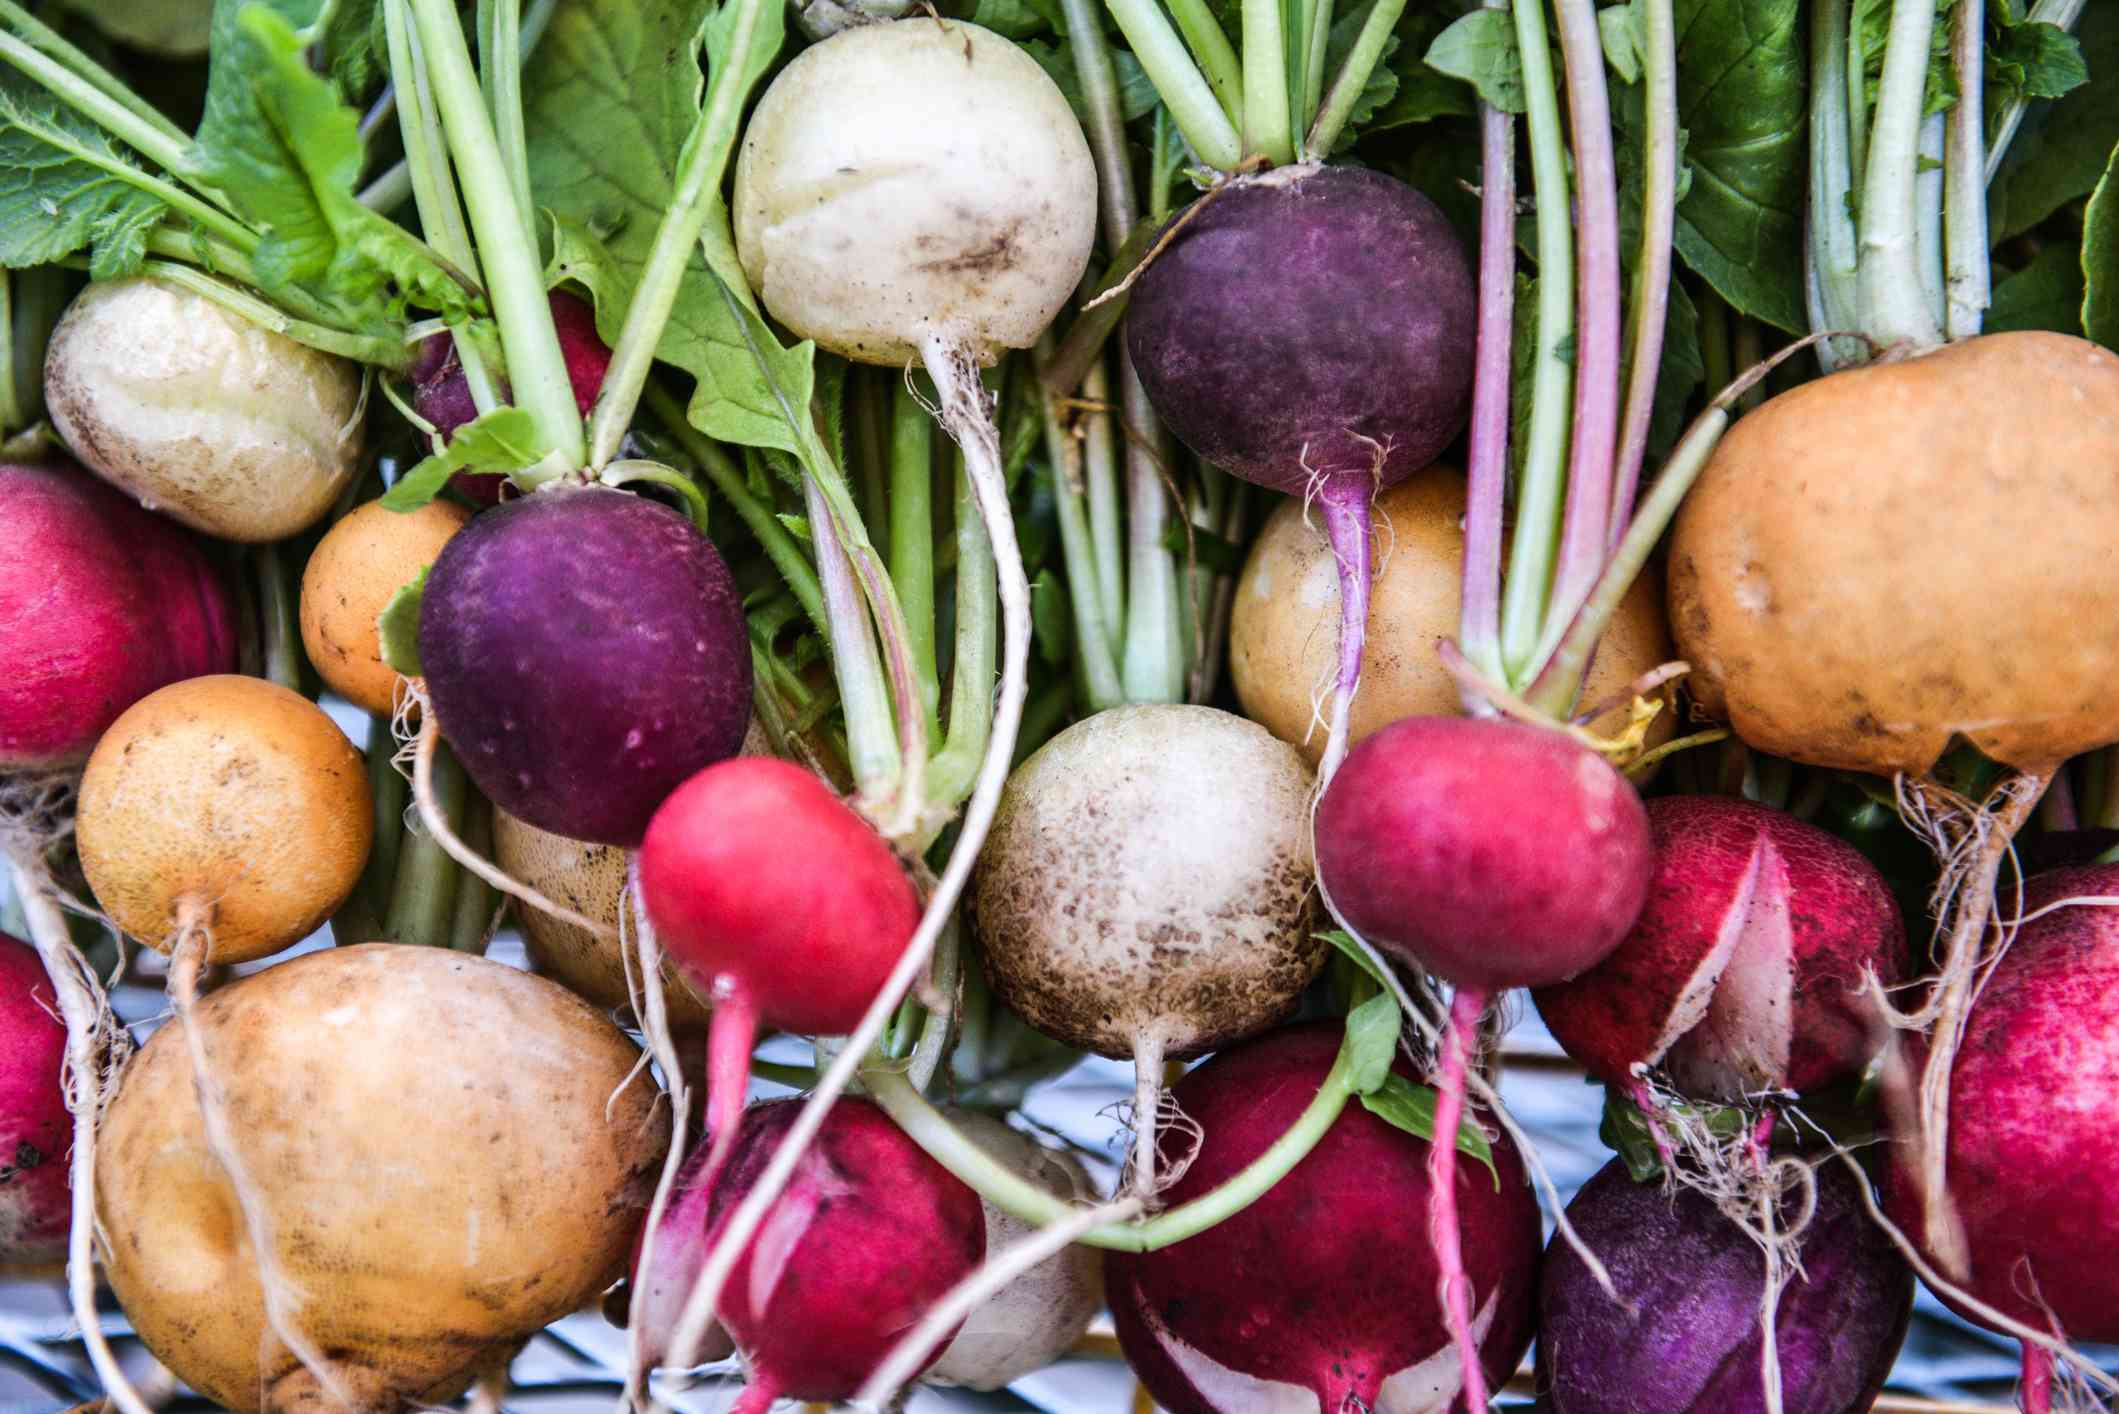 red, white, purple, and gold radishes freshly harvested from garden